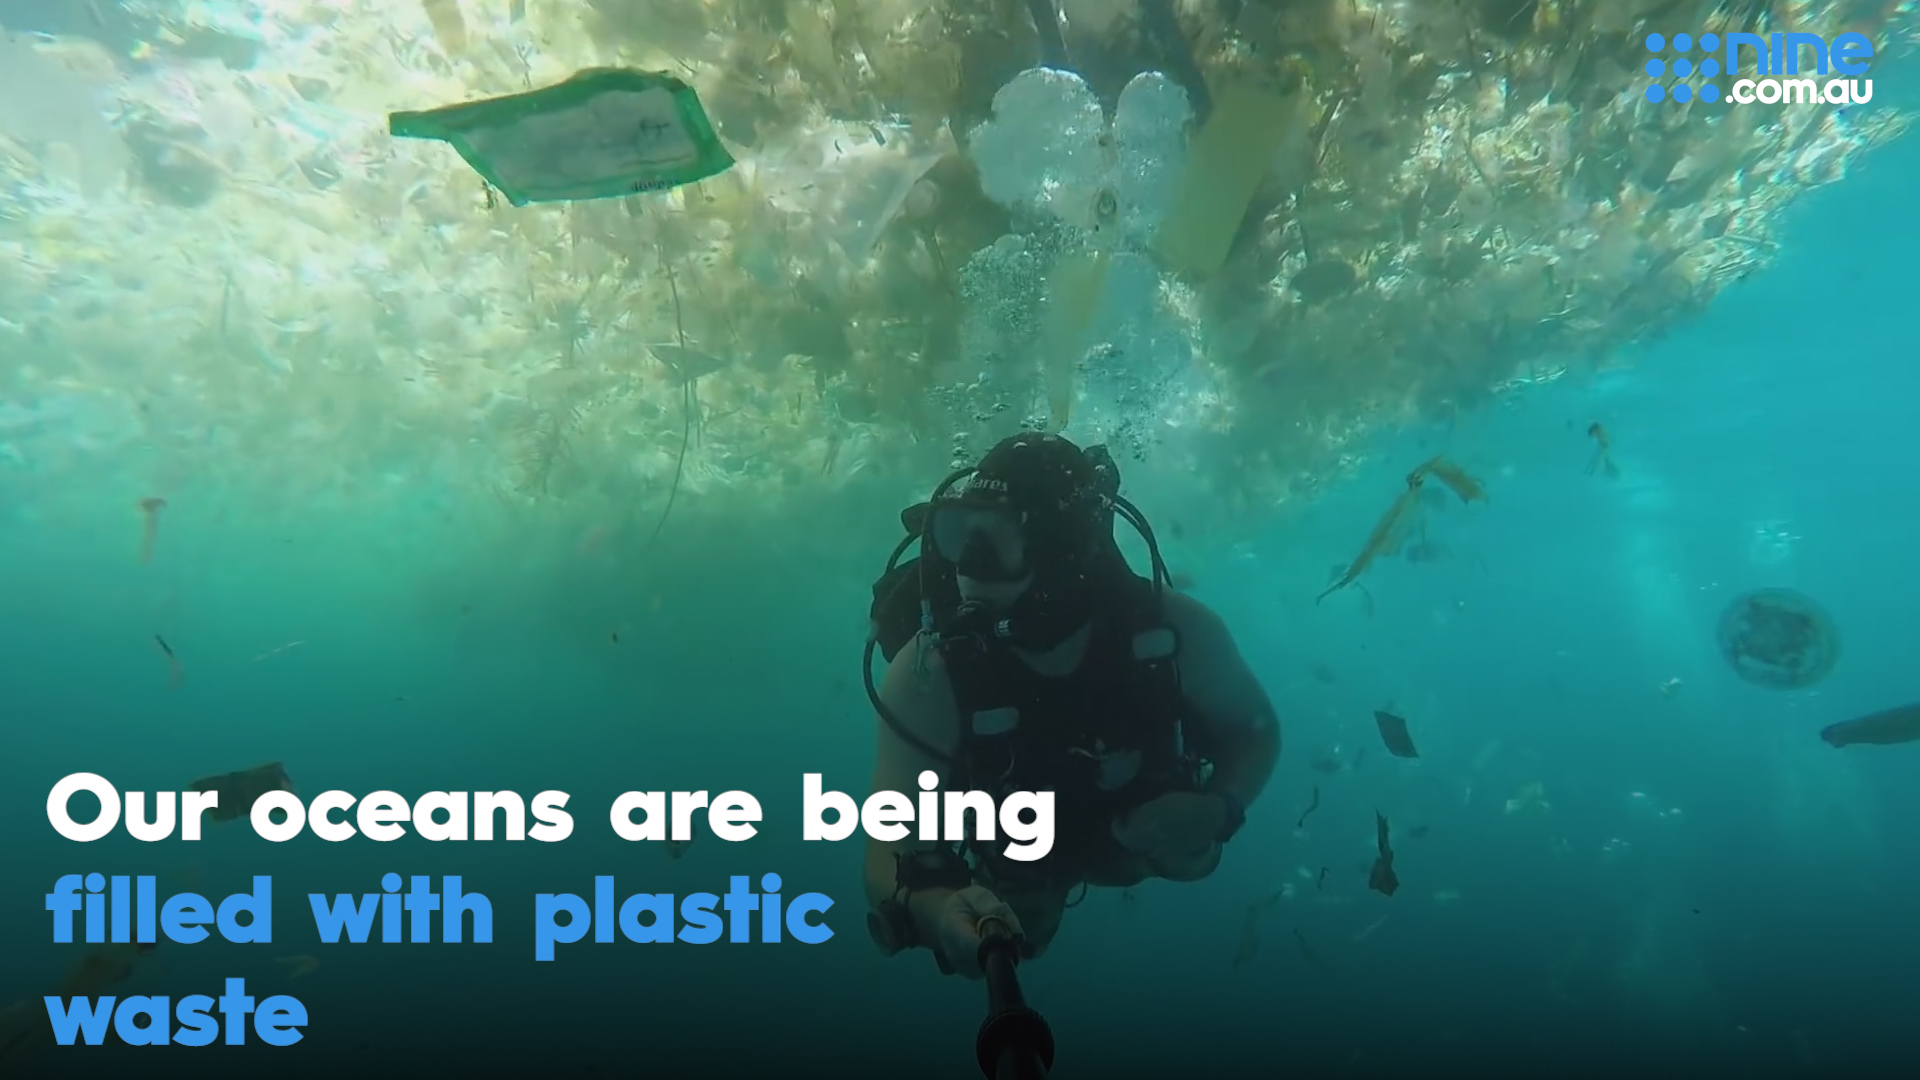 Our oceans are being filled with plastic waste